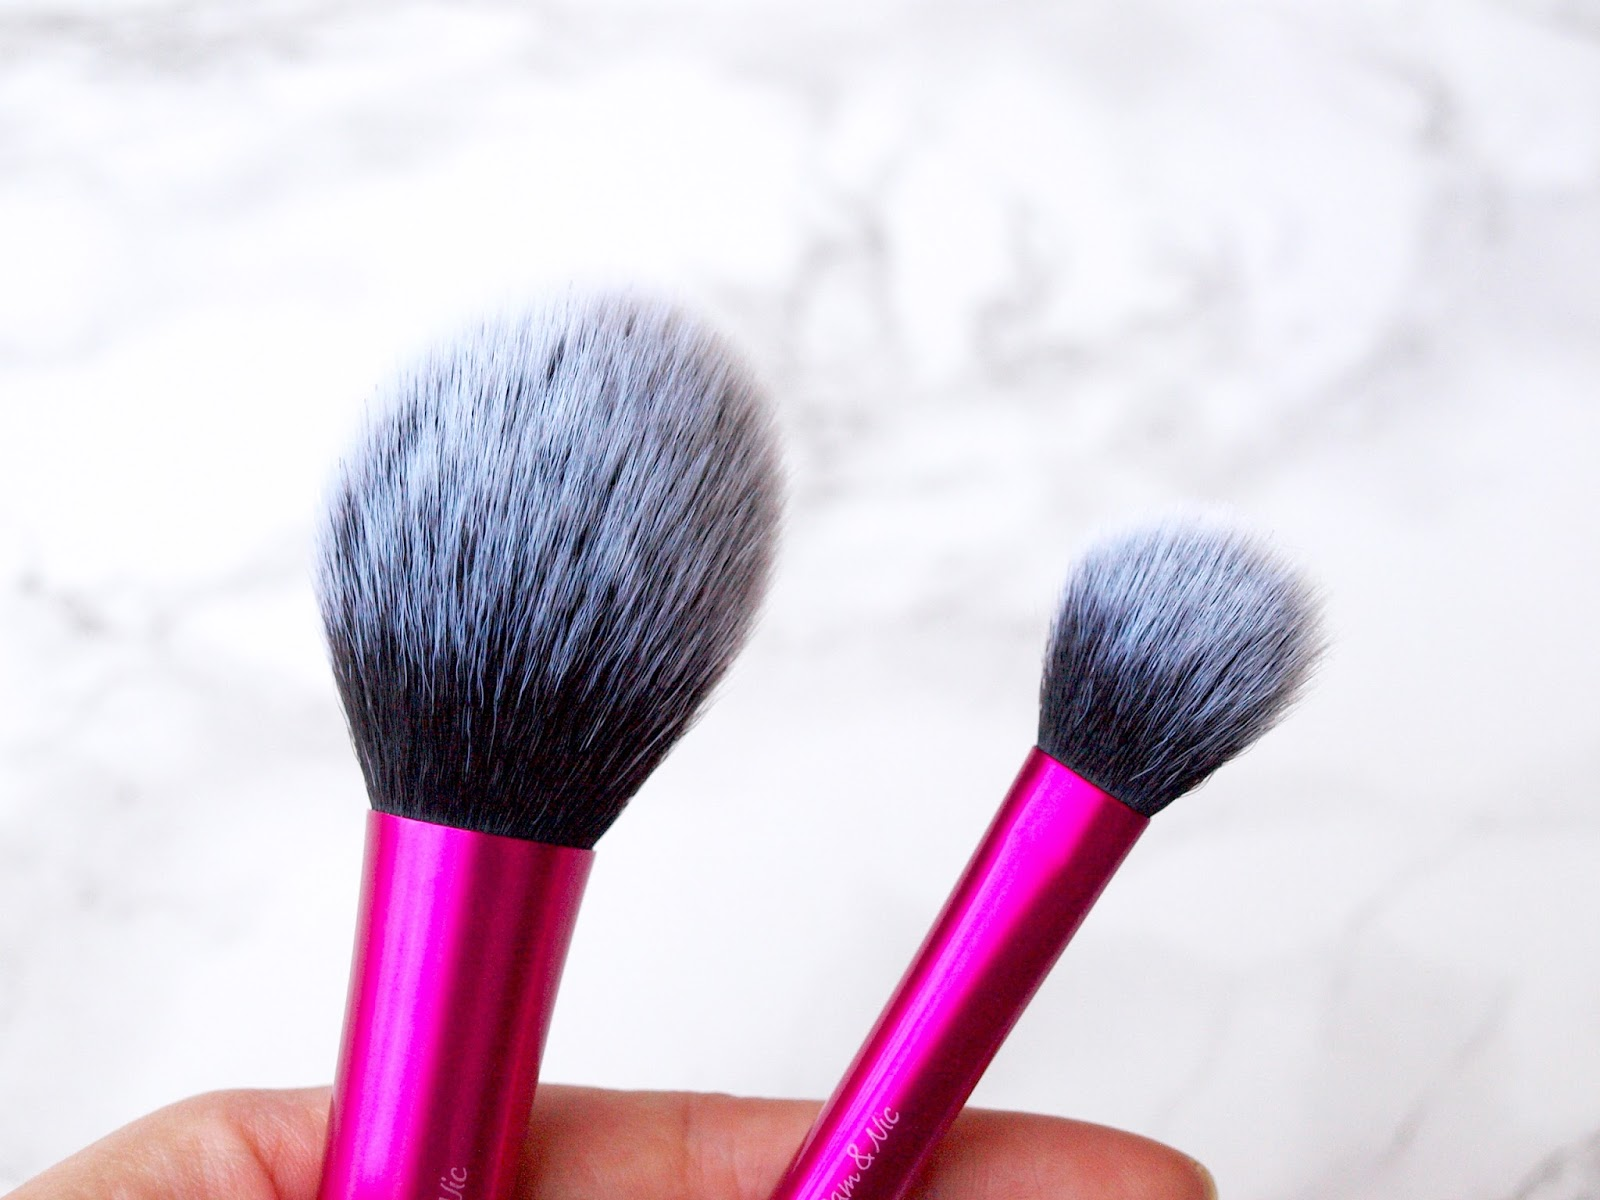 Real Techniques Blush Brush Pink Daftar Harga Terbaik Terkini Dan 1407 The Im Reviewing Here Is A Perfect All Rounder That